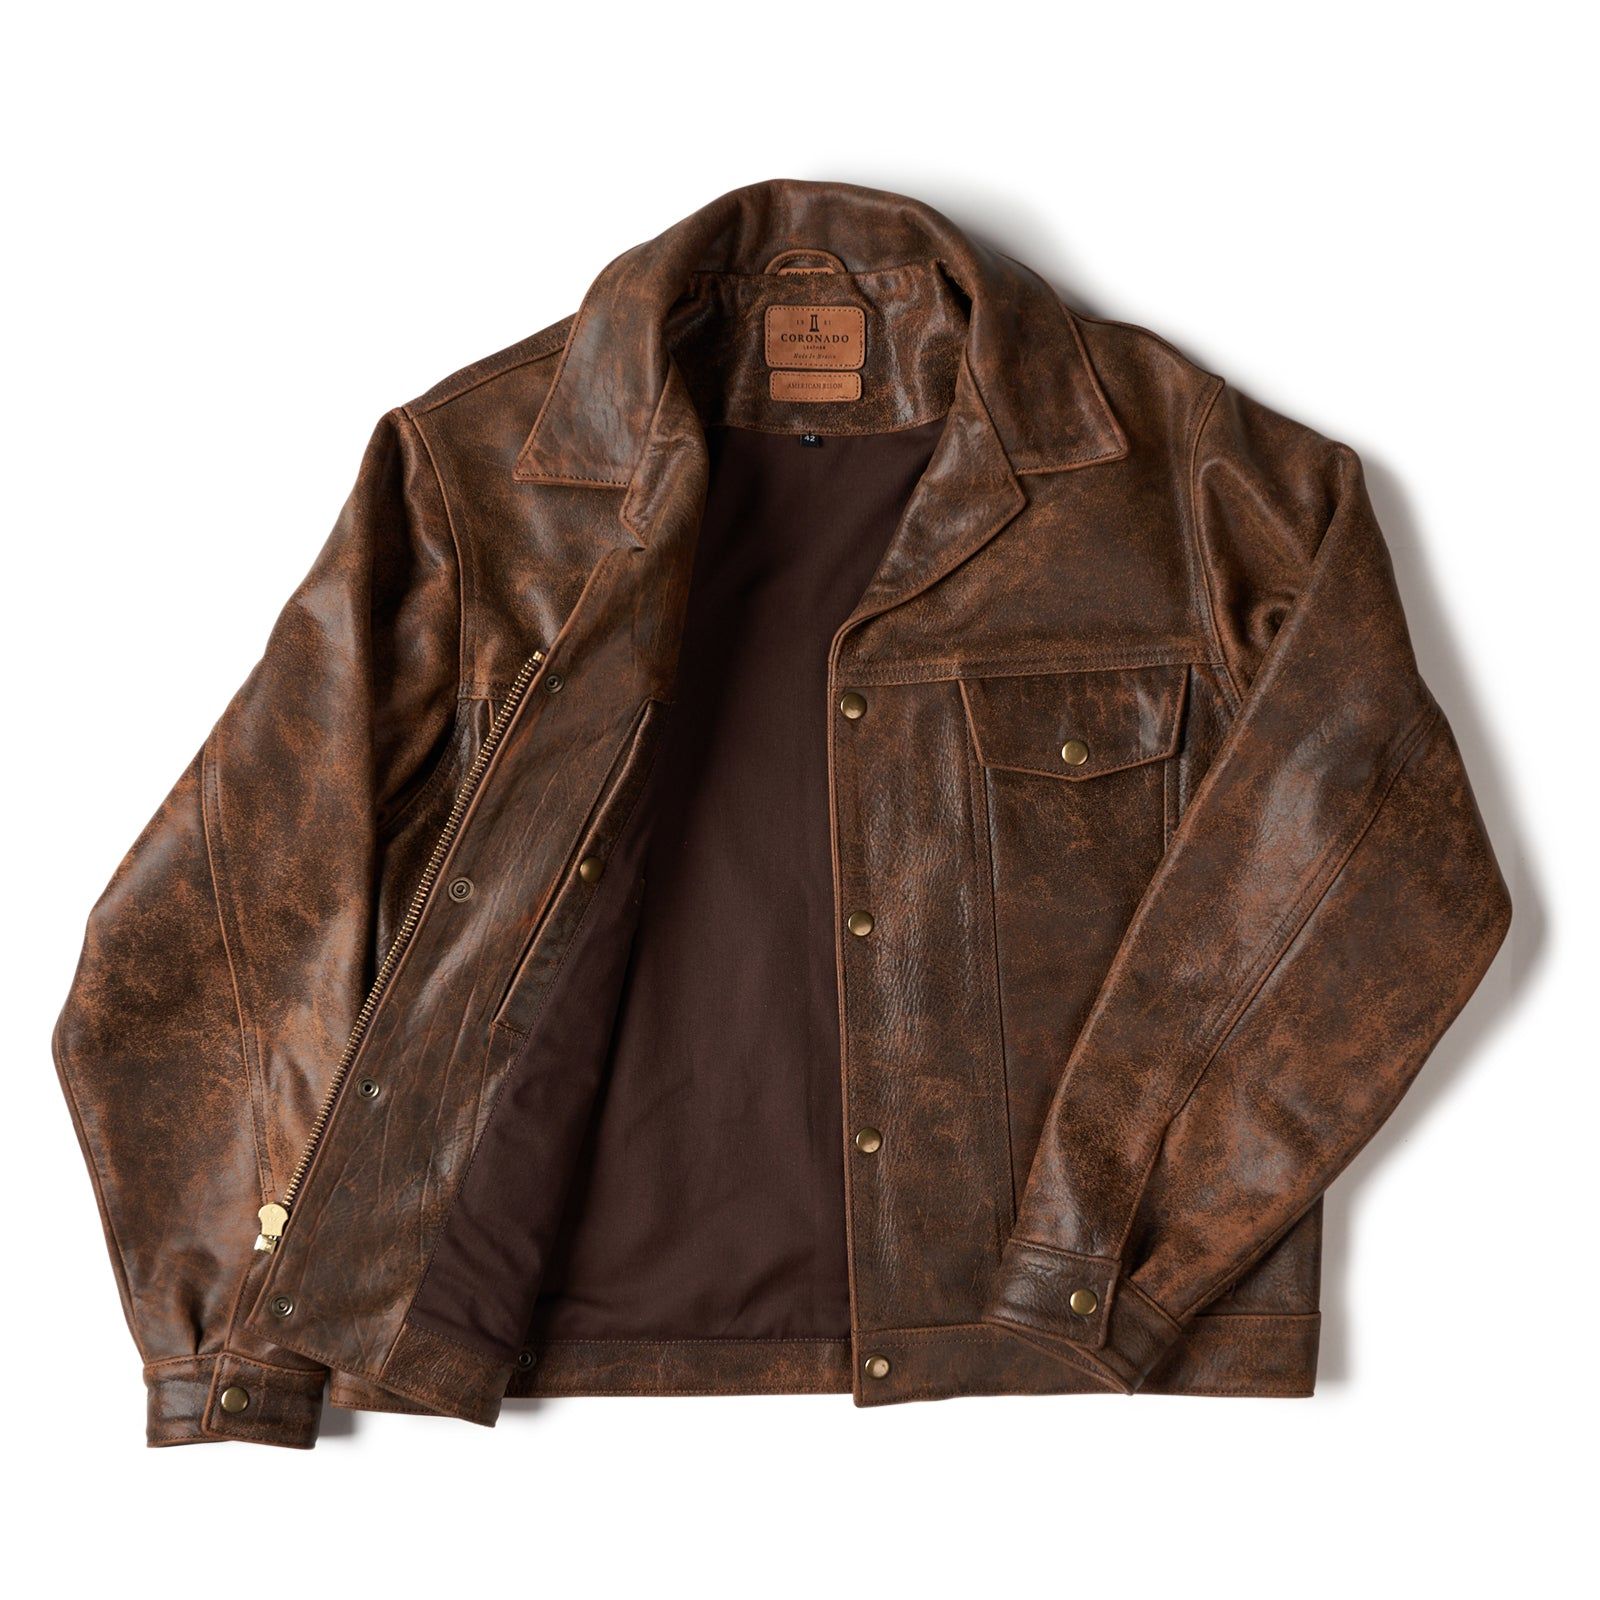 Indy Bison Jacket (SOLD OUT)